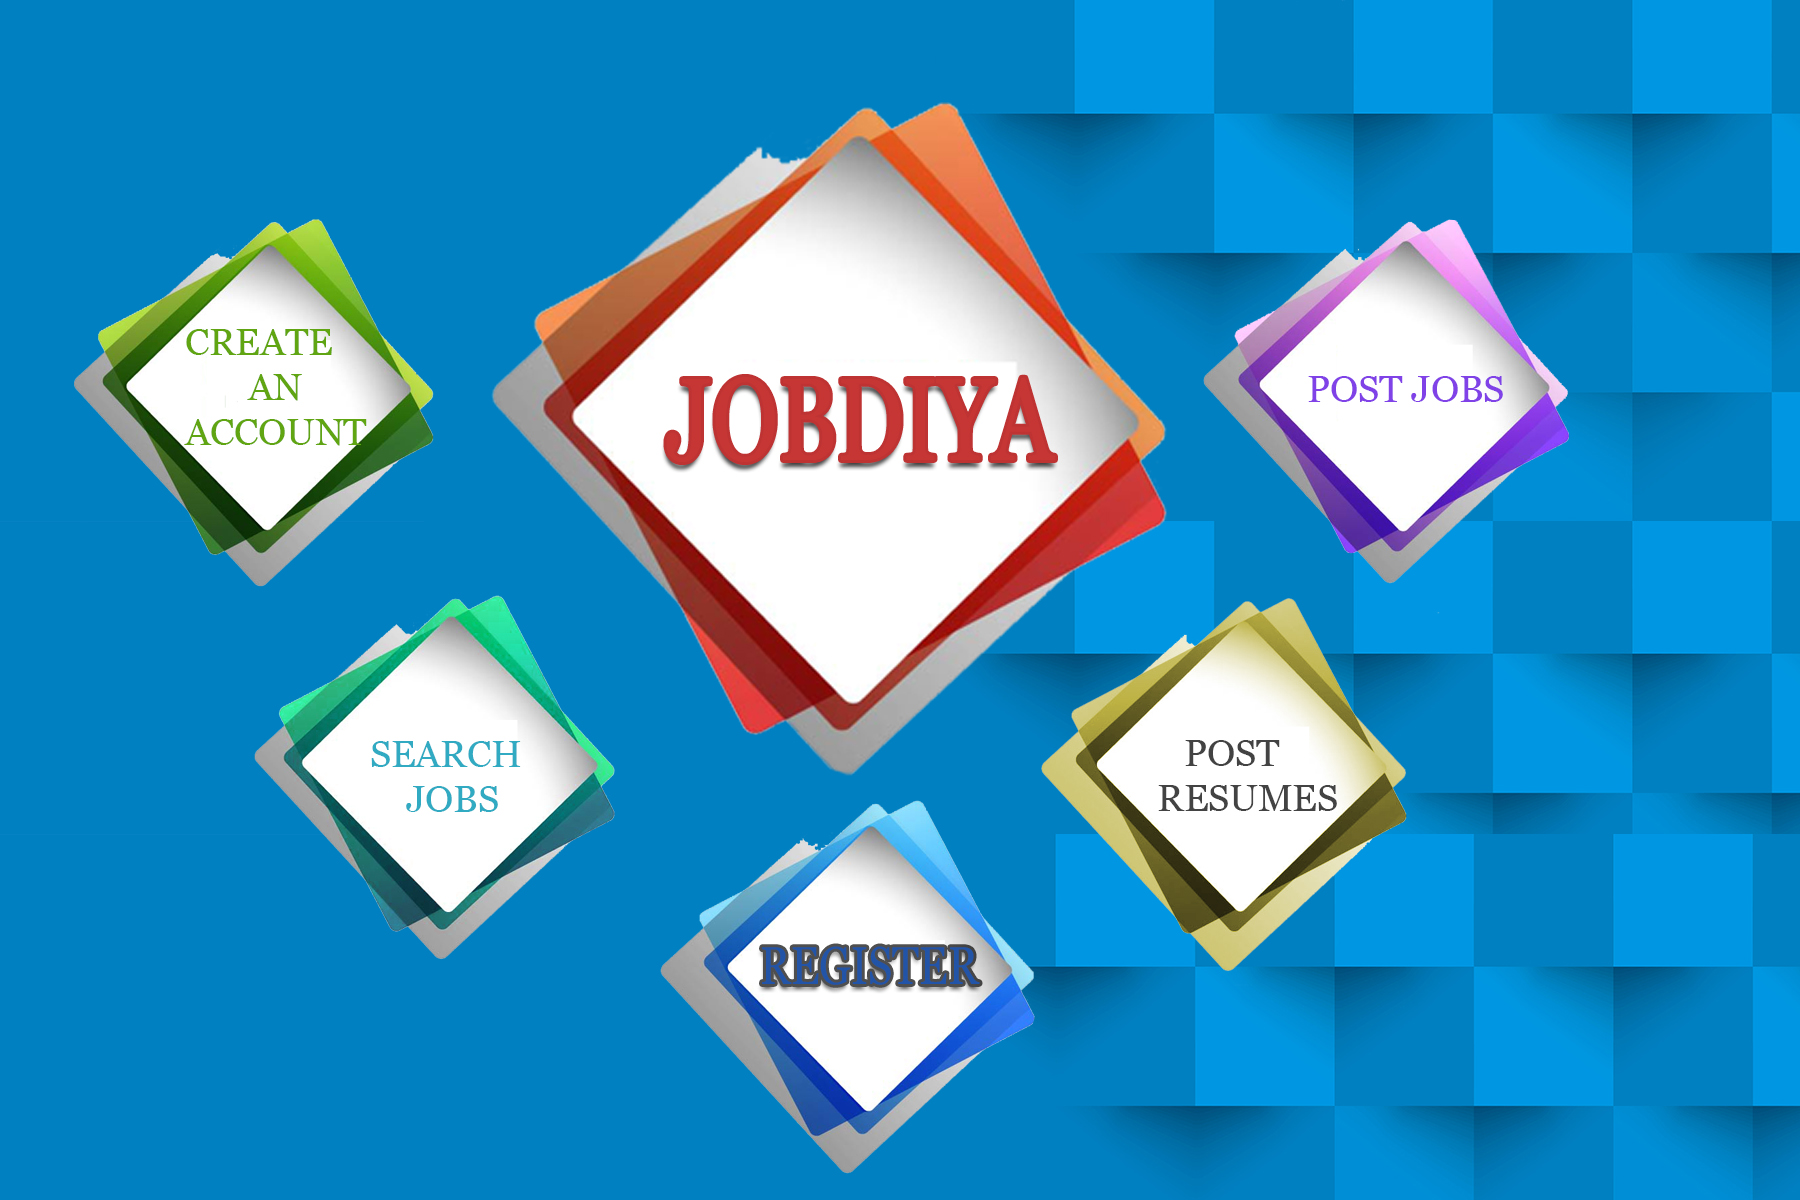 Image for  best software training in  hyderabad _ job diya app.com